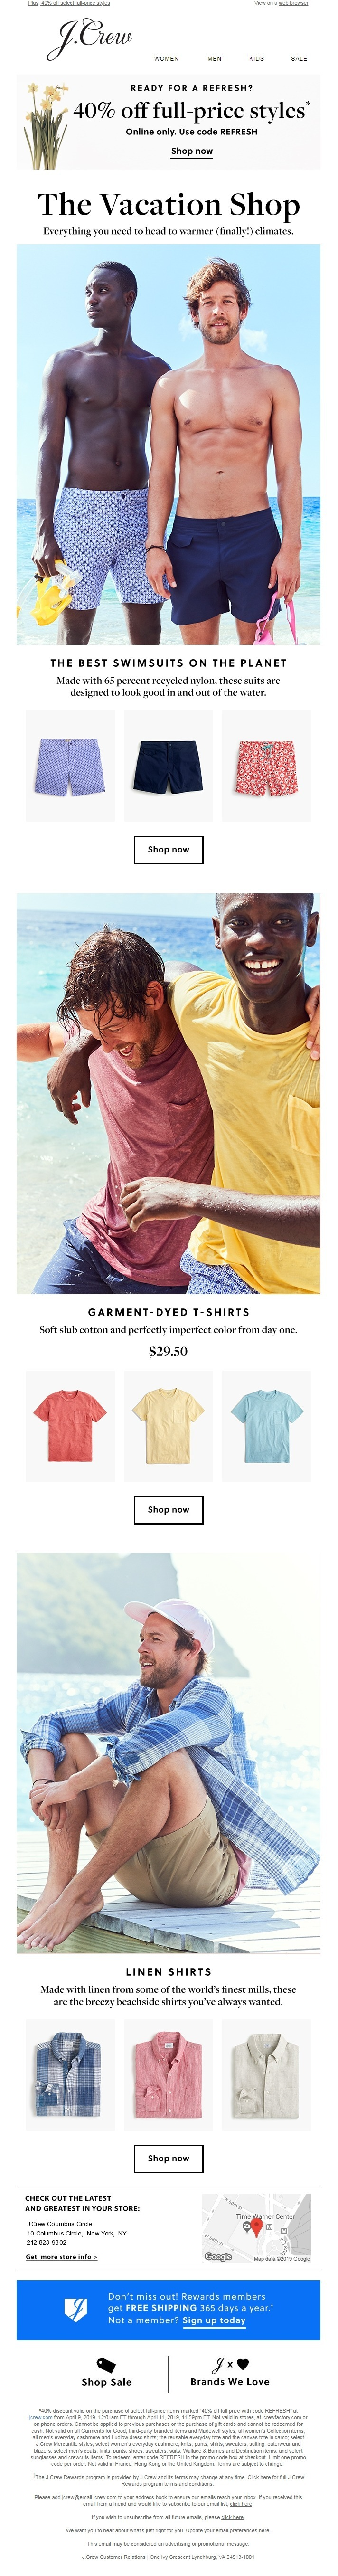 Using personalization and segmentation data, J. Crew clearly targeted men, possibly between the ages of 24-35.